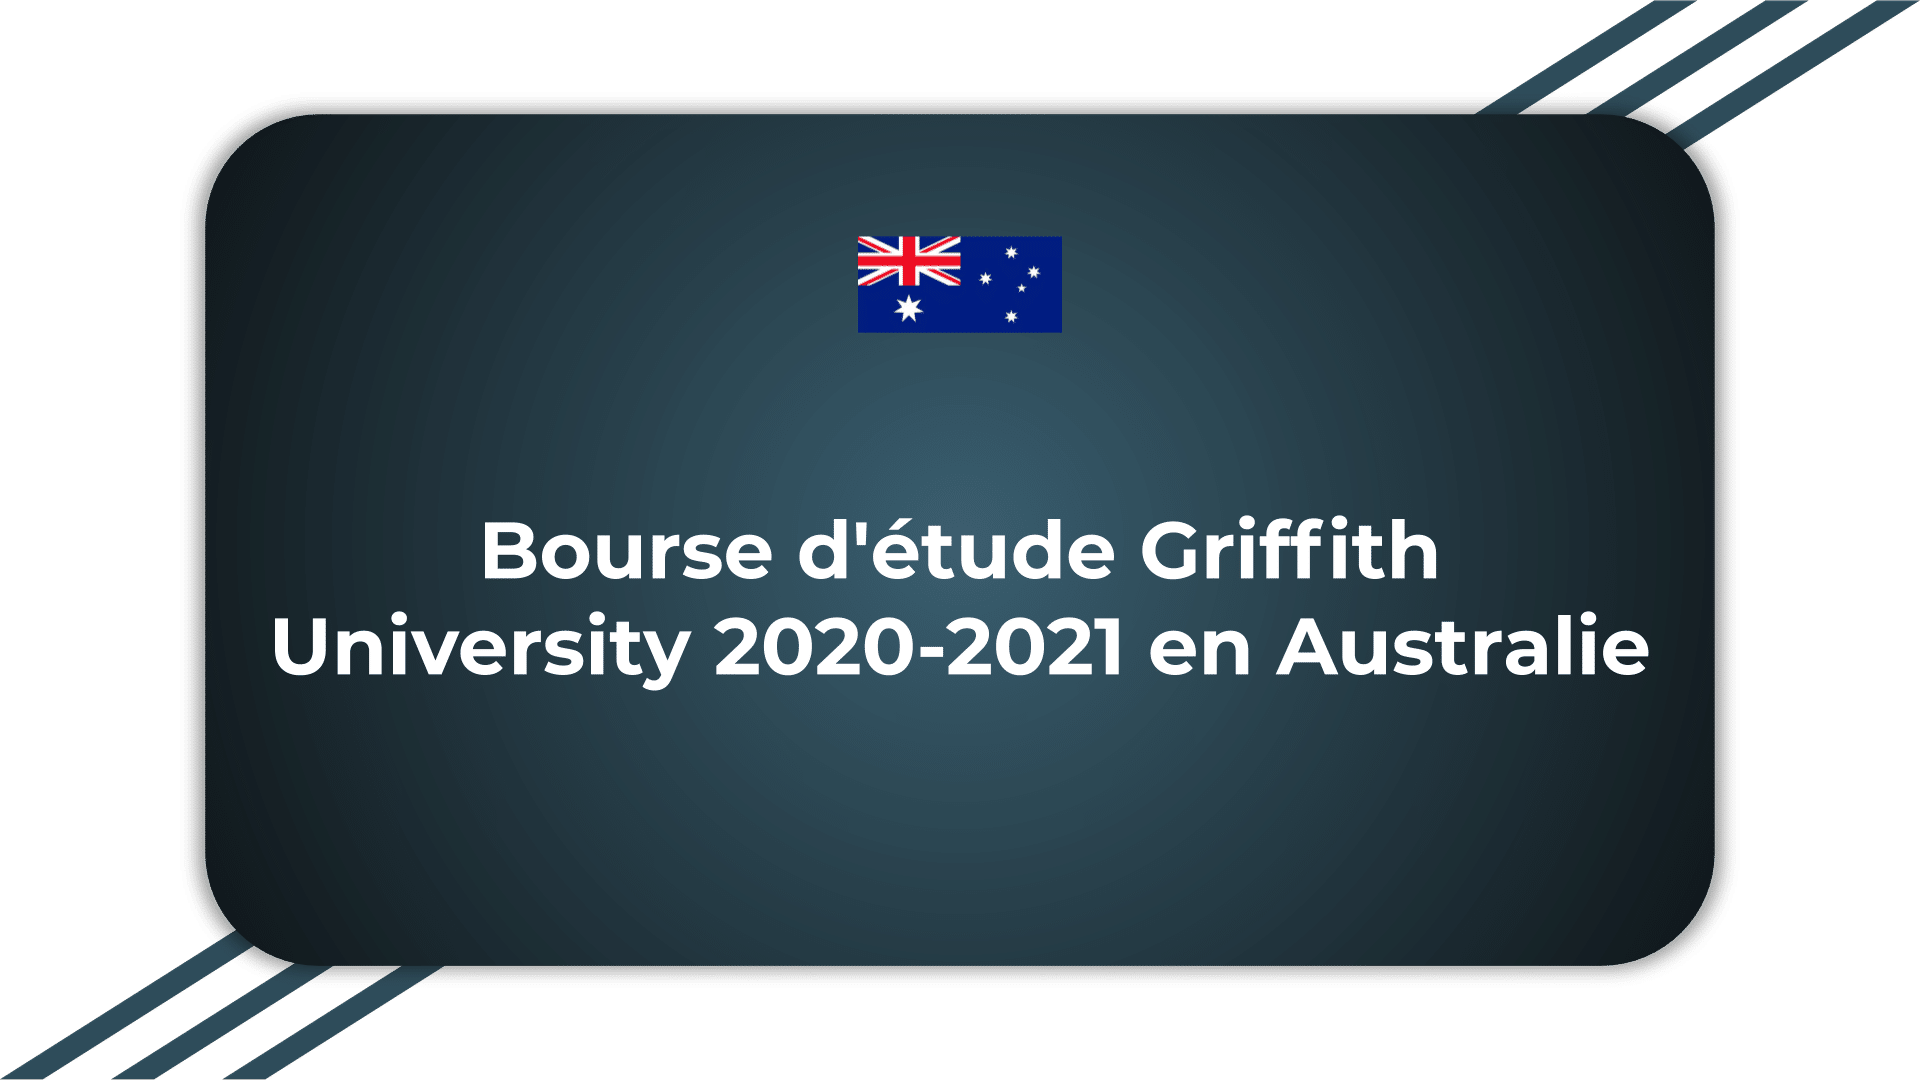 Bourse d'étude Griffith University